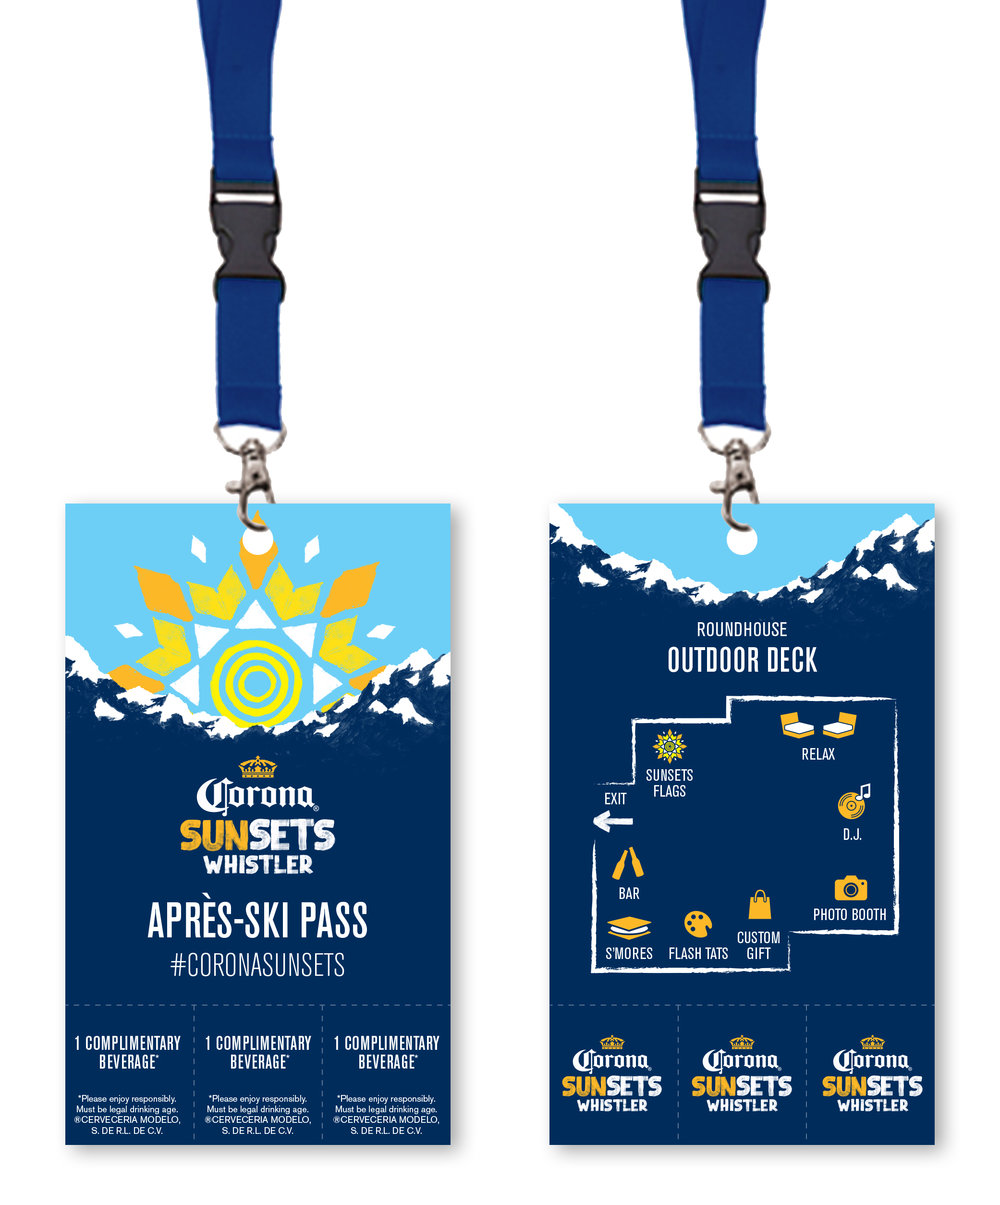 """Apres-Ski"" lanyard passes for the Corona Sunsets event in Whistler, BC. Includes 3 detachable drink tickets."